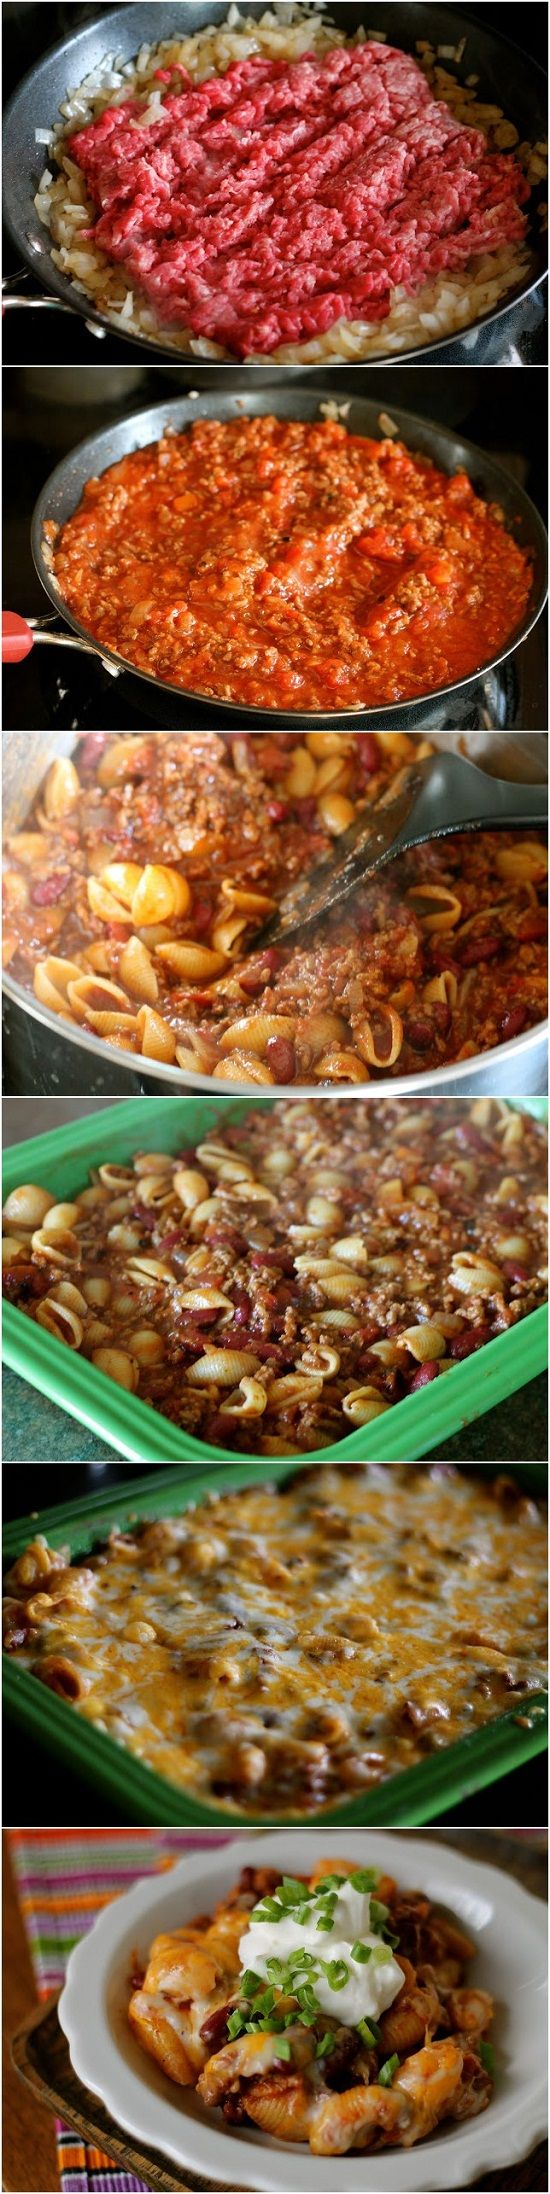 Chili Pasta Bake. Made this tonight and it was good. I doubled the recipe and it fed six of us stuffed, and there was plenty left over for lunch for tomorrow. Next time I will use plain or garlic tomatoes because the family don't care for spicy like I do, and the green chilies were too much for them. Everyone else loved it otherwise.